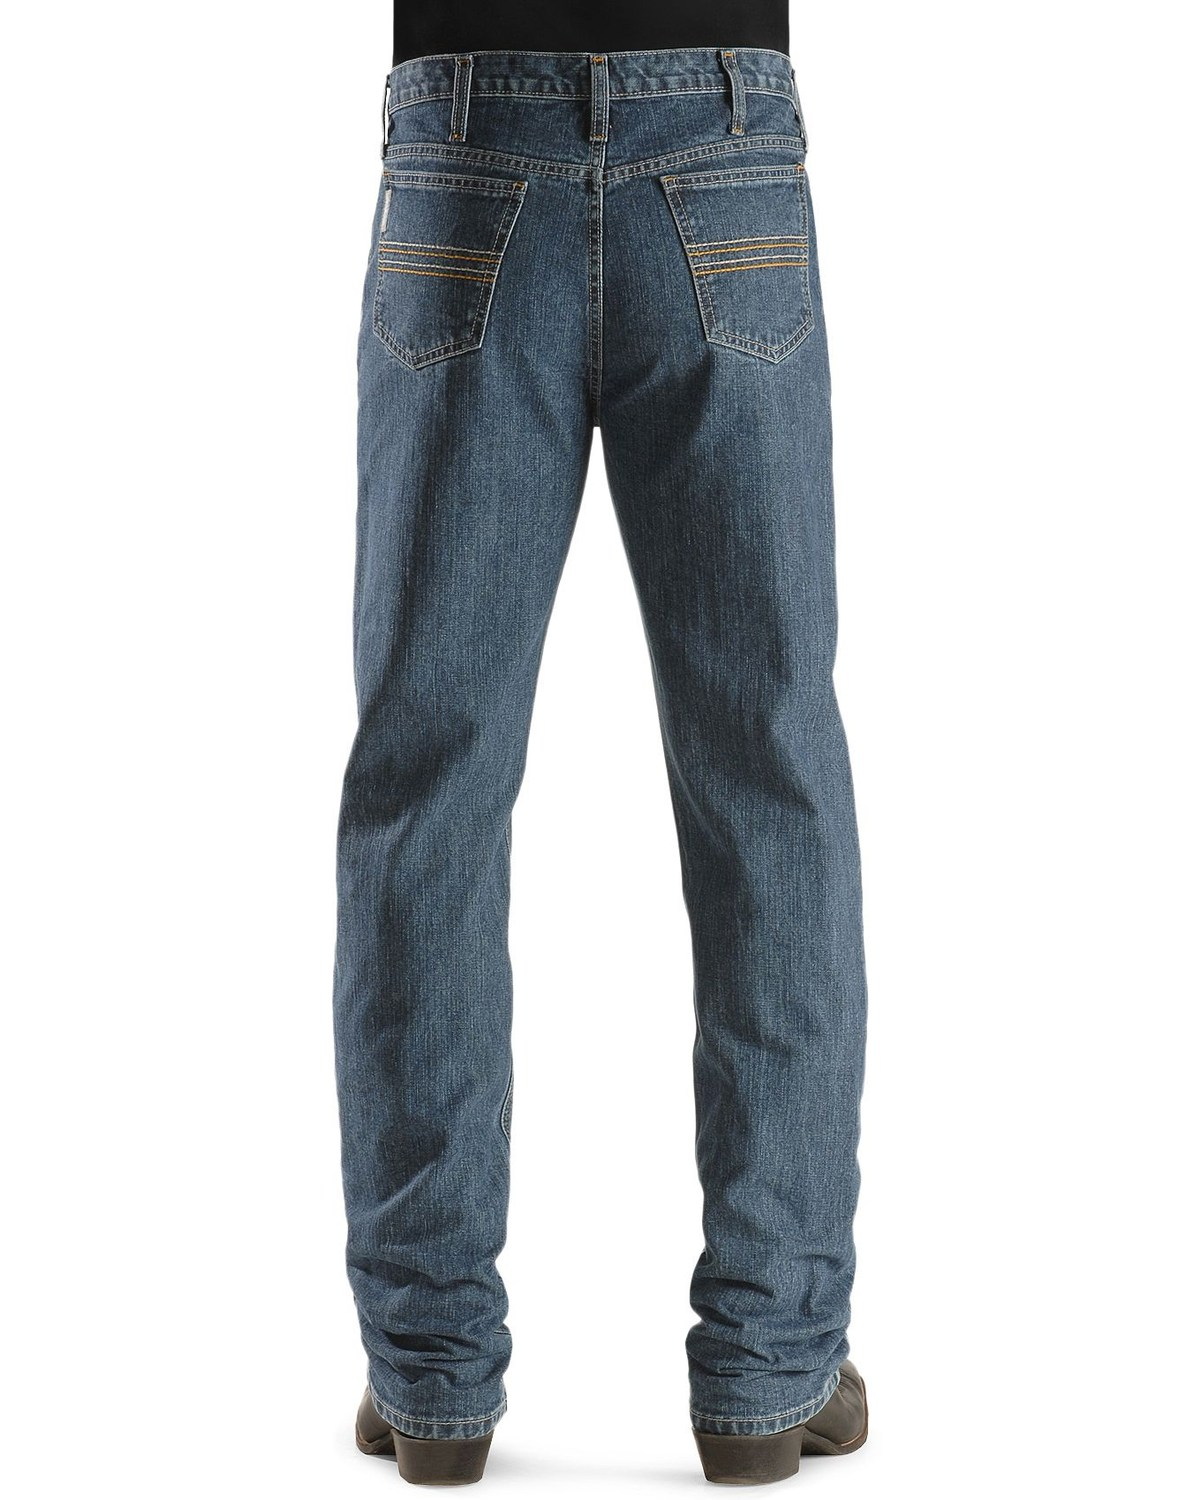 9ca294f5 Zoomed Image Cinch Men's Silver Label Slim Fit Jeans, Indigo, ...